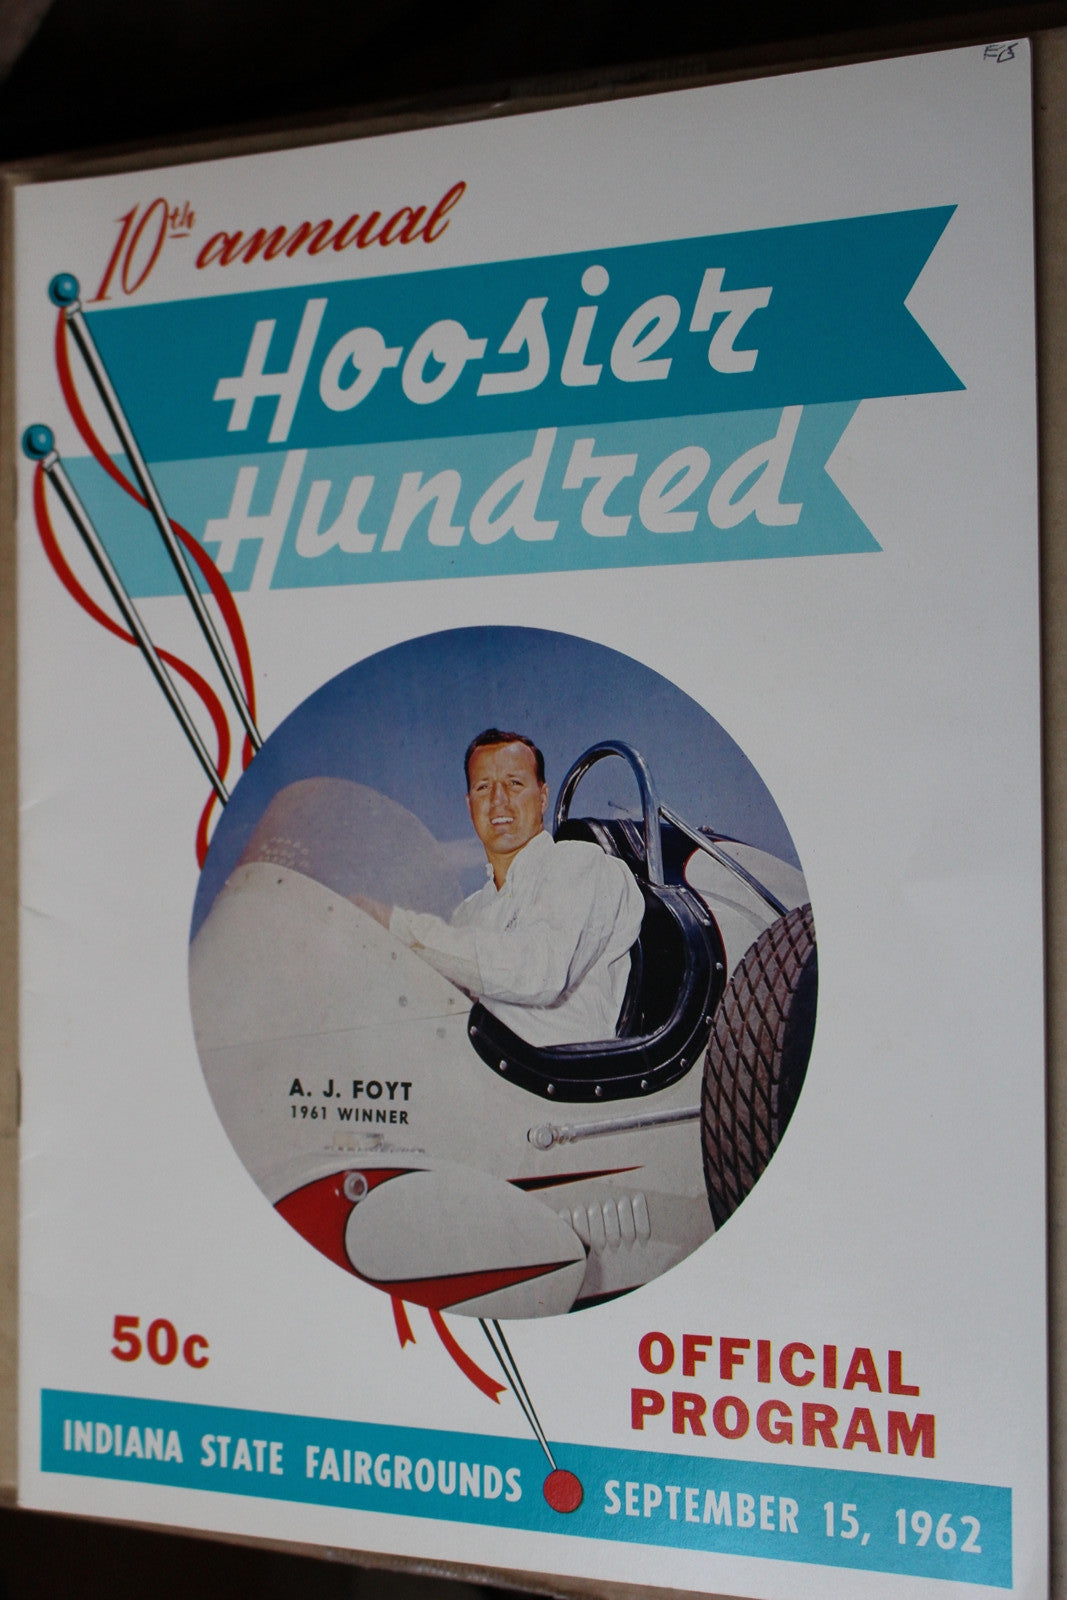 1962 Hoosier Hundred Race Program - Vintage Indy Sports